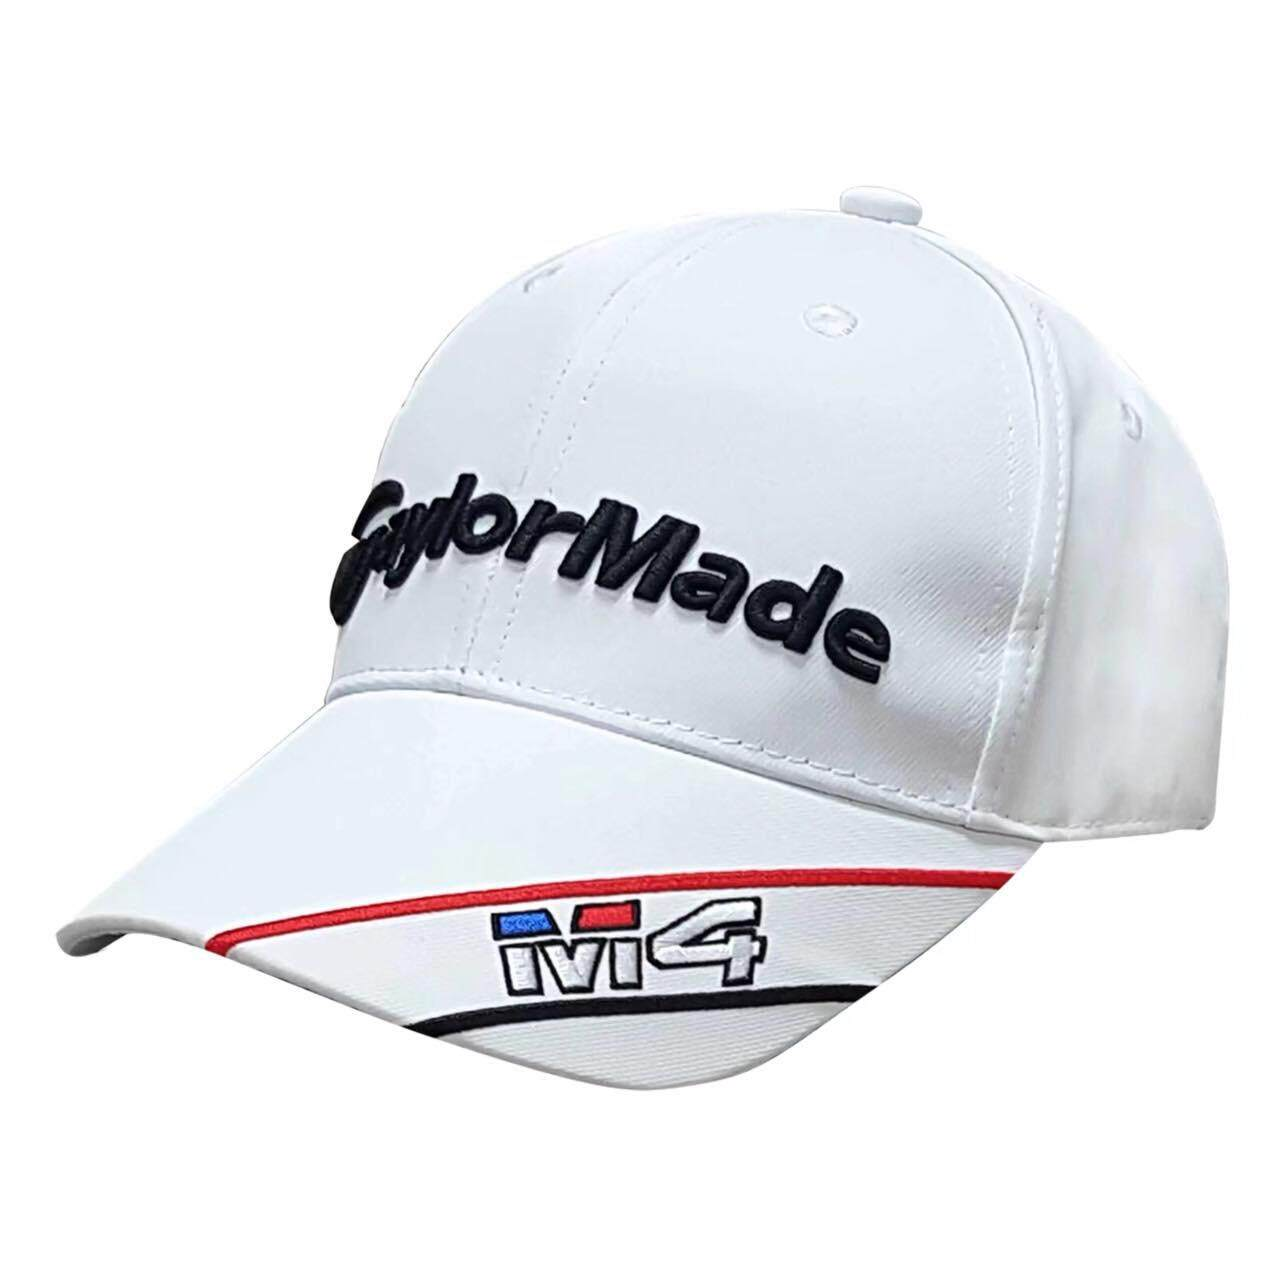 QYGOLF : GOLF CAP Clip with Magnetic Ball Marker ( TAYLORMADE-M4 ) หมวกกอล์ฟ แถมมาร์คเกอร์ในตัว หมวก สี : White Size Int :  One size